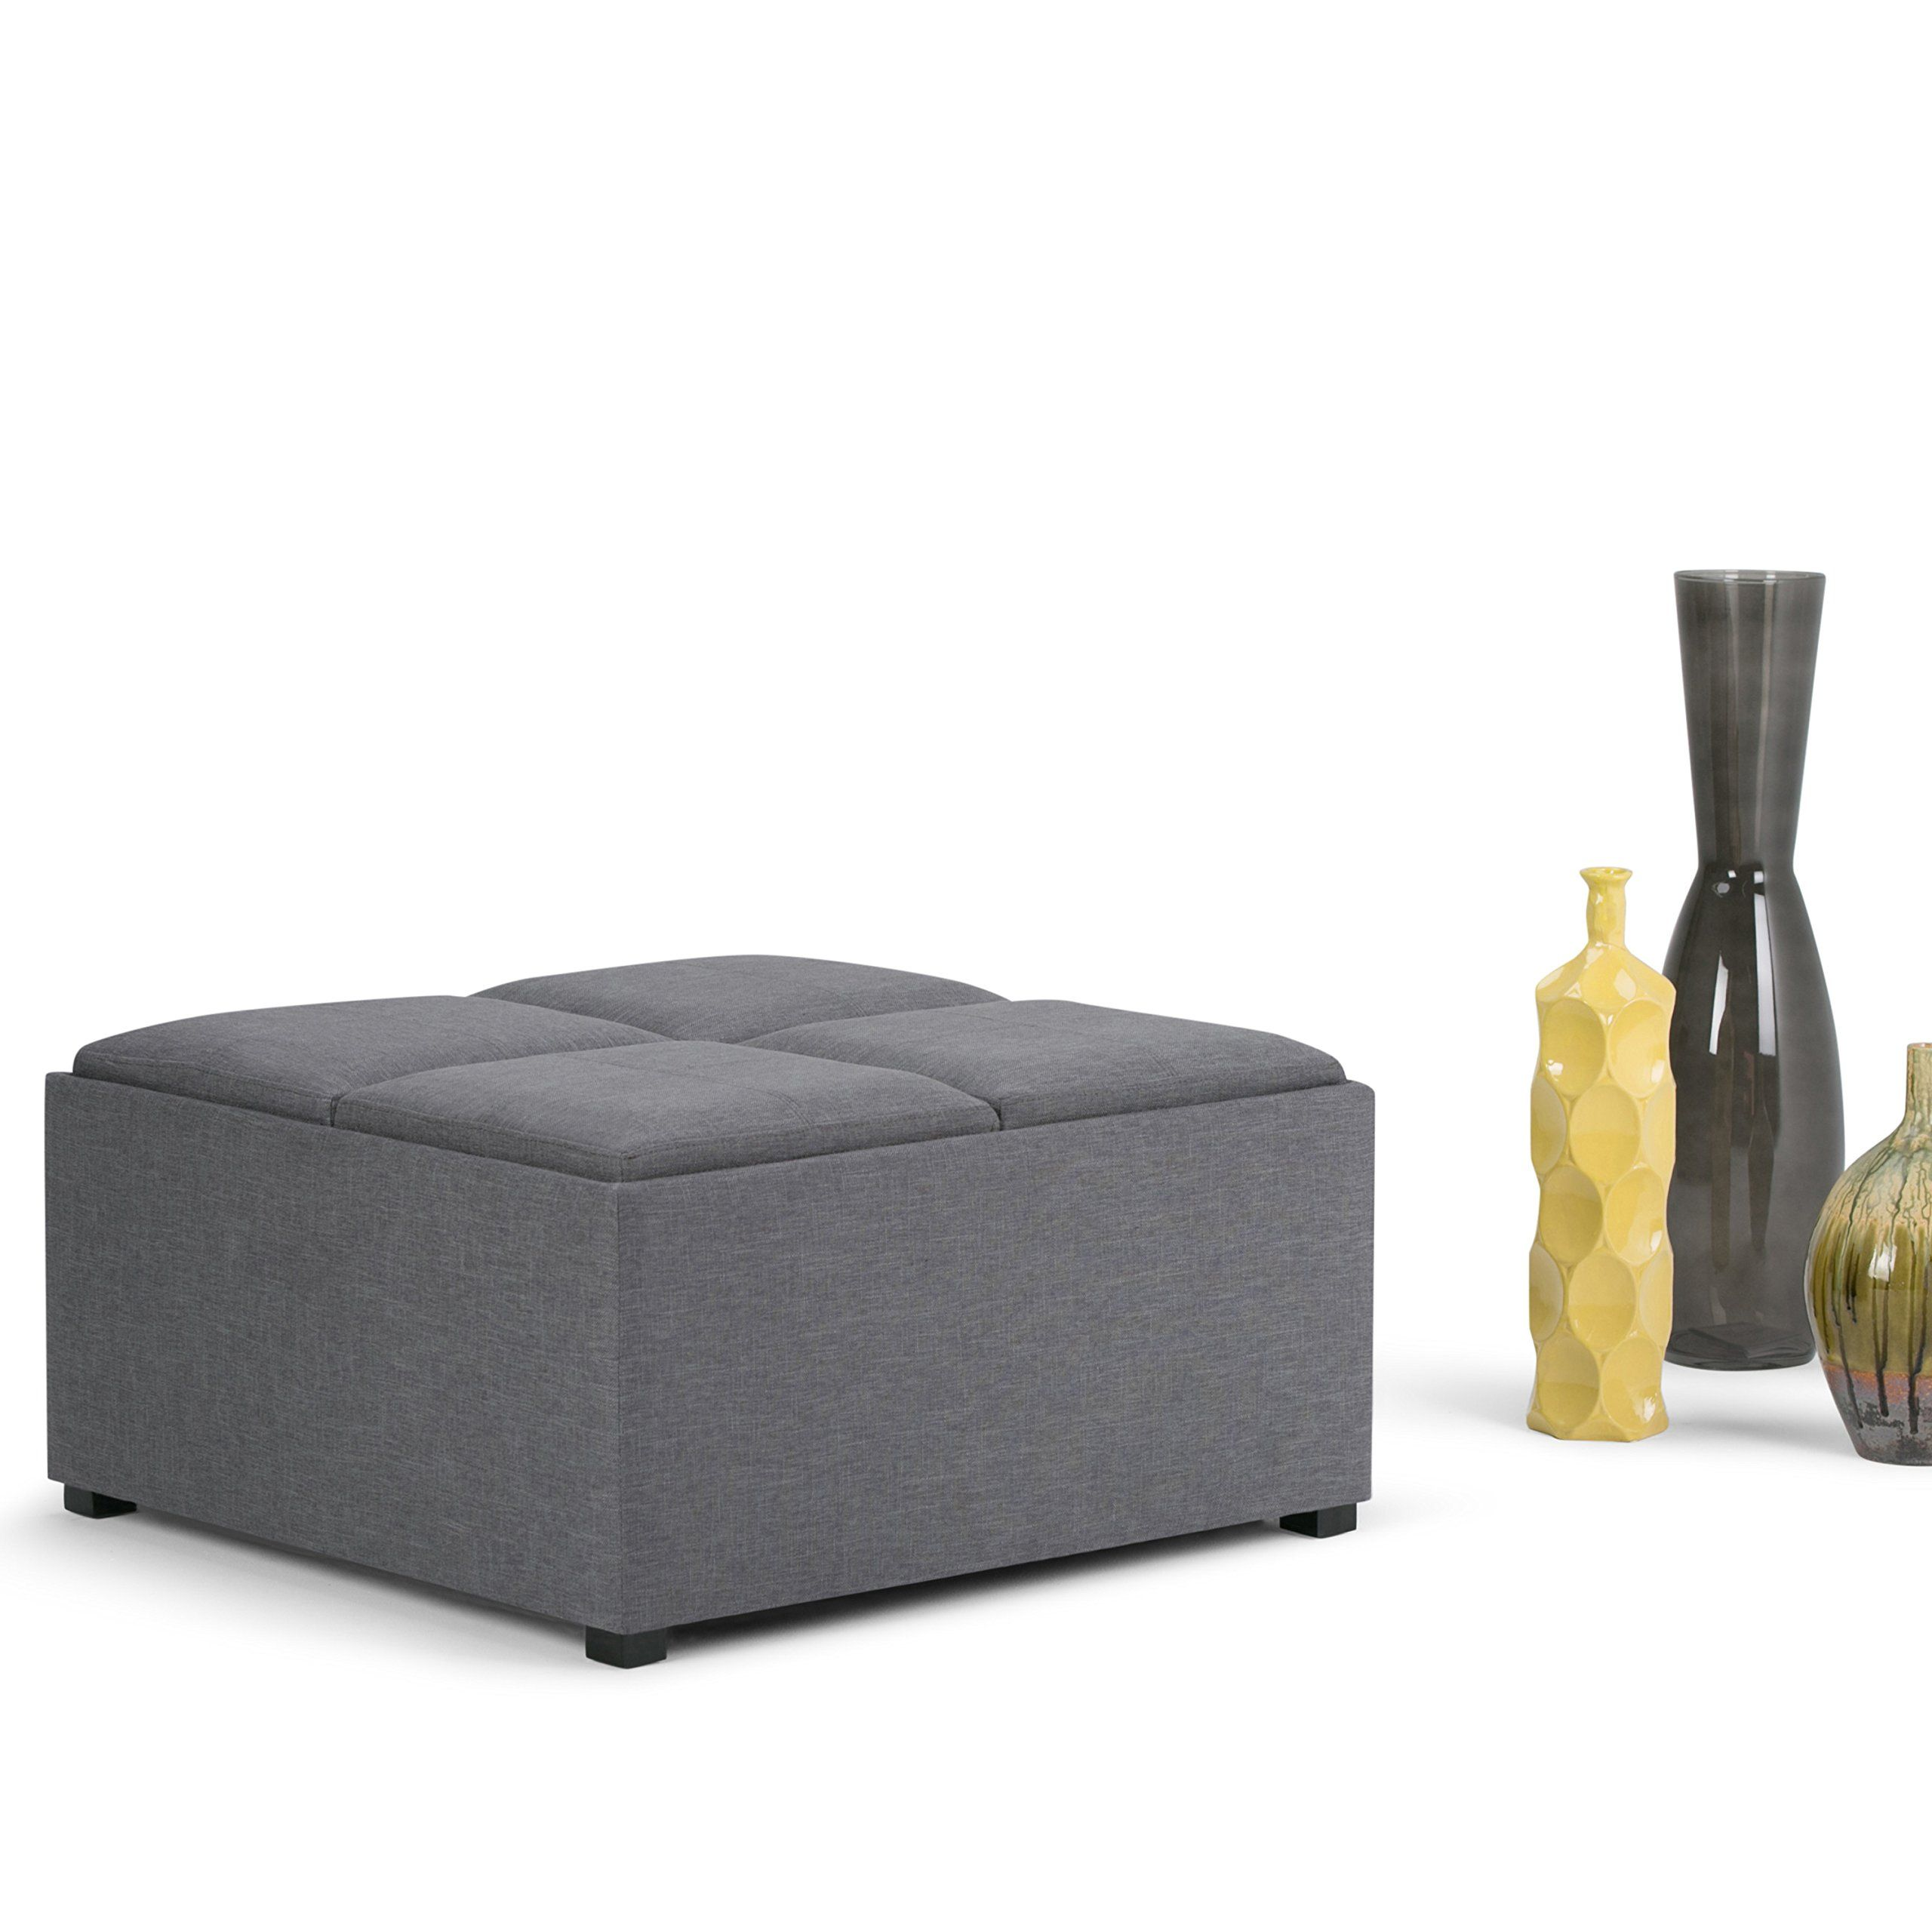 Simpli Home Avalon Coffee Table Storage Ottoman With 4 Serving Trays Slate Grey Find